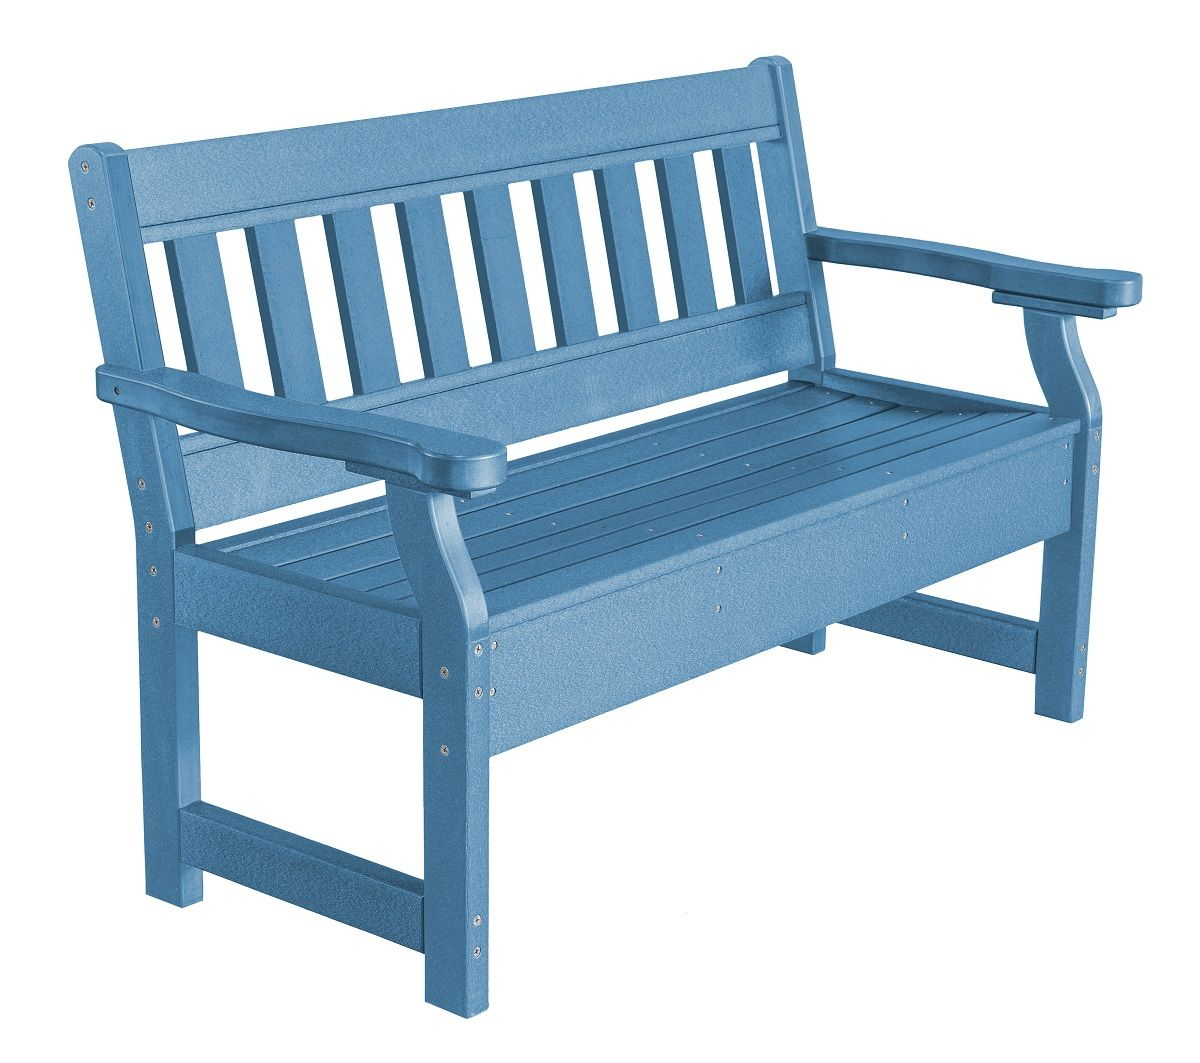 Powder Blue Aden Garden Bench